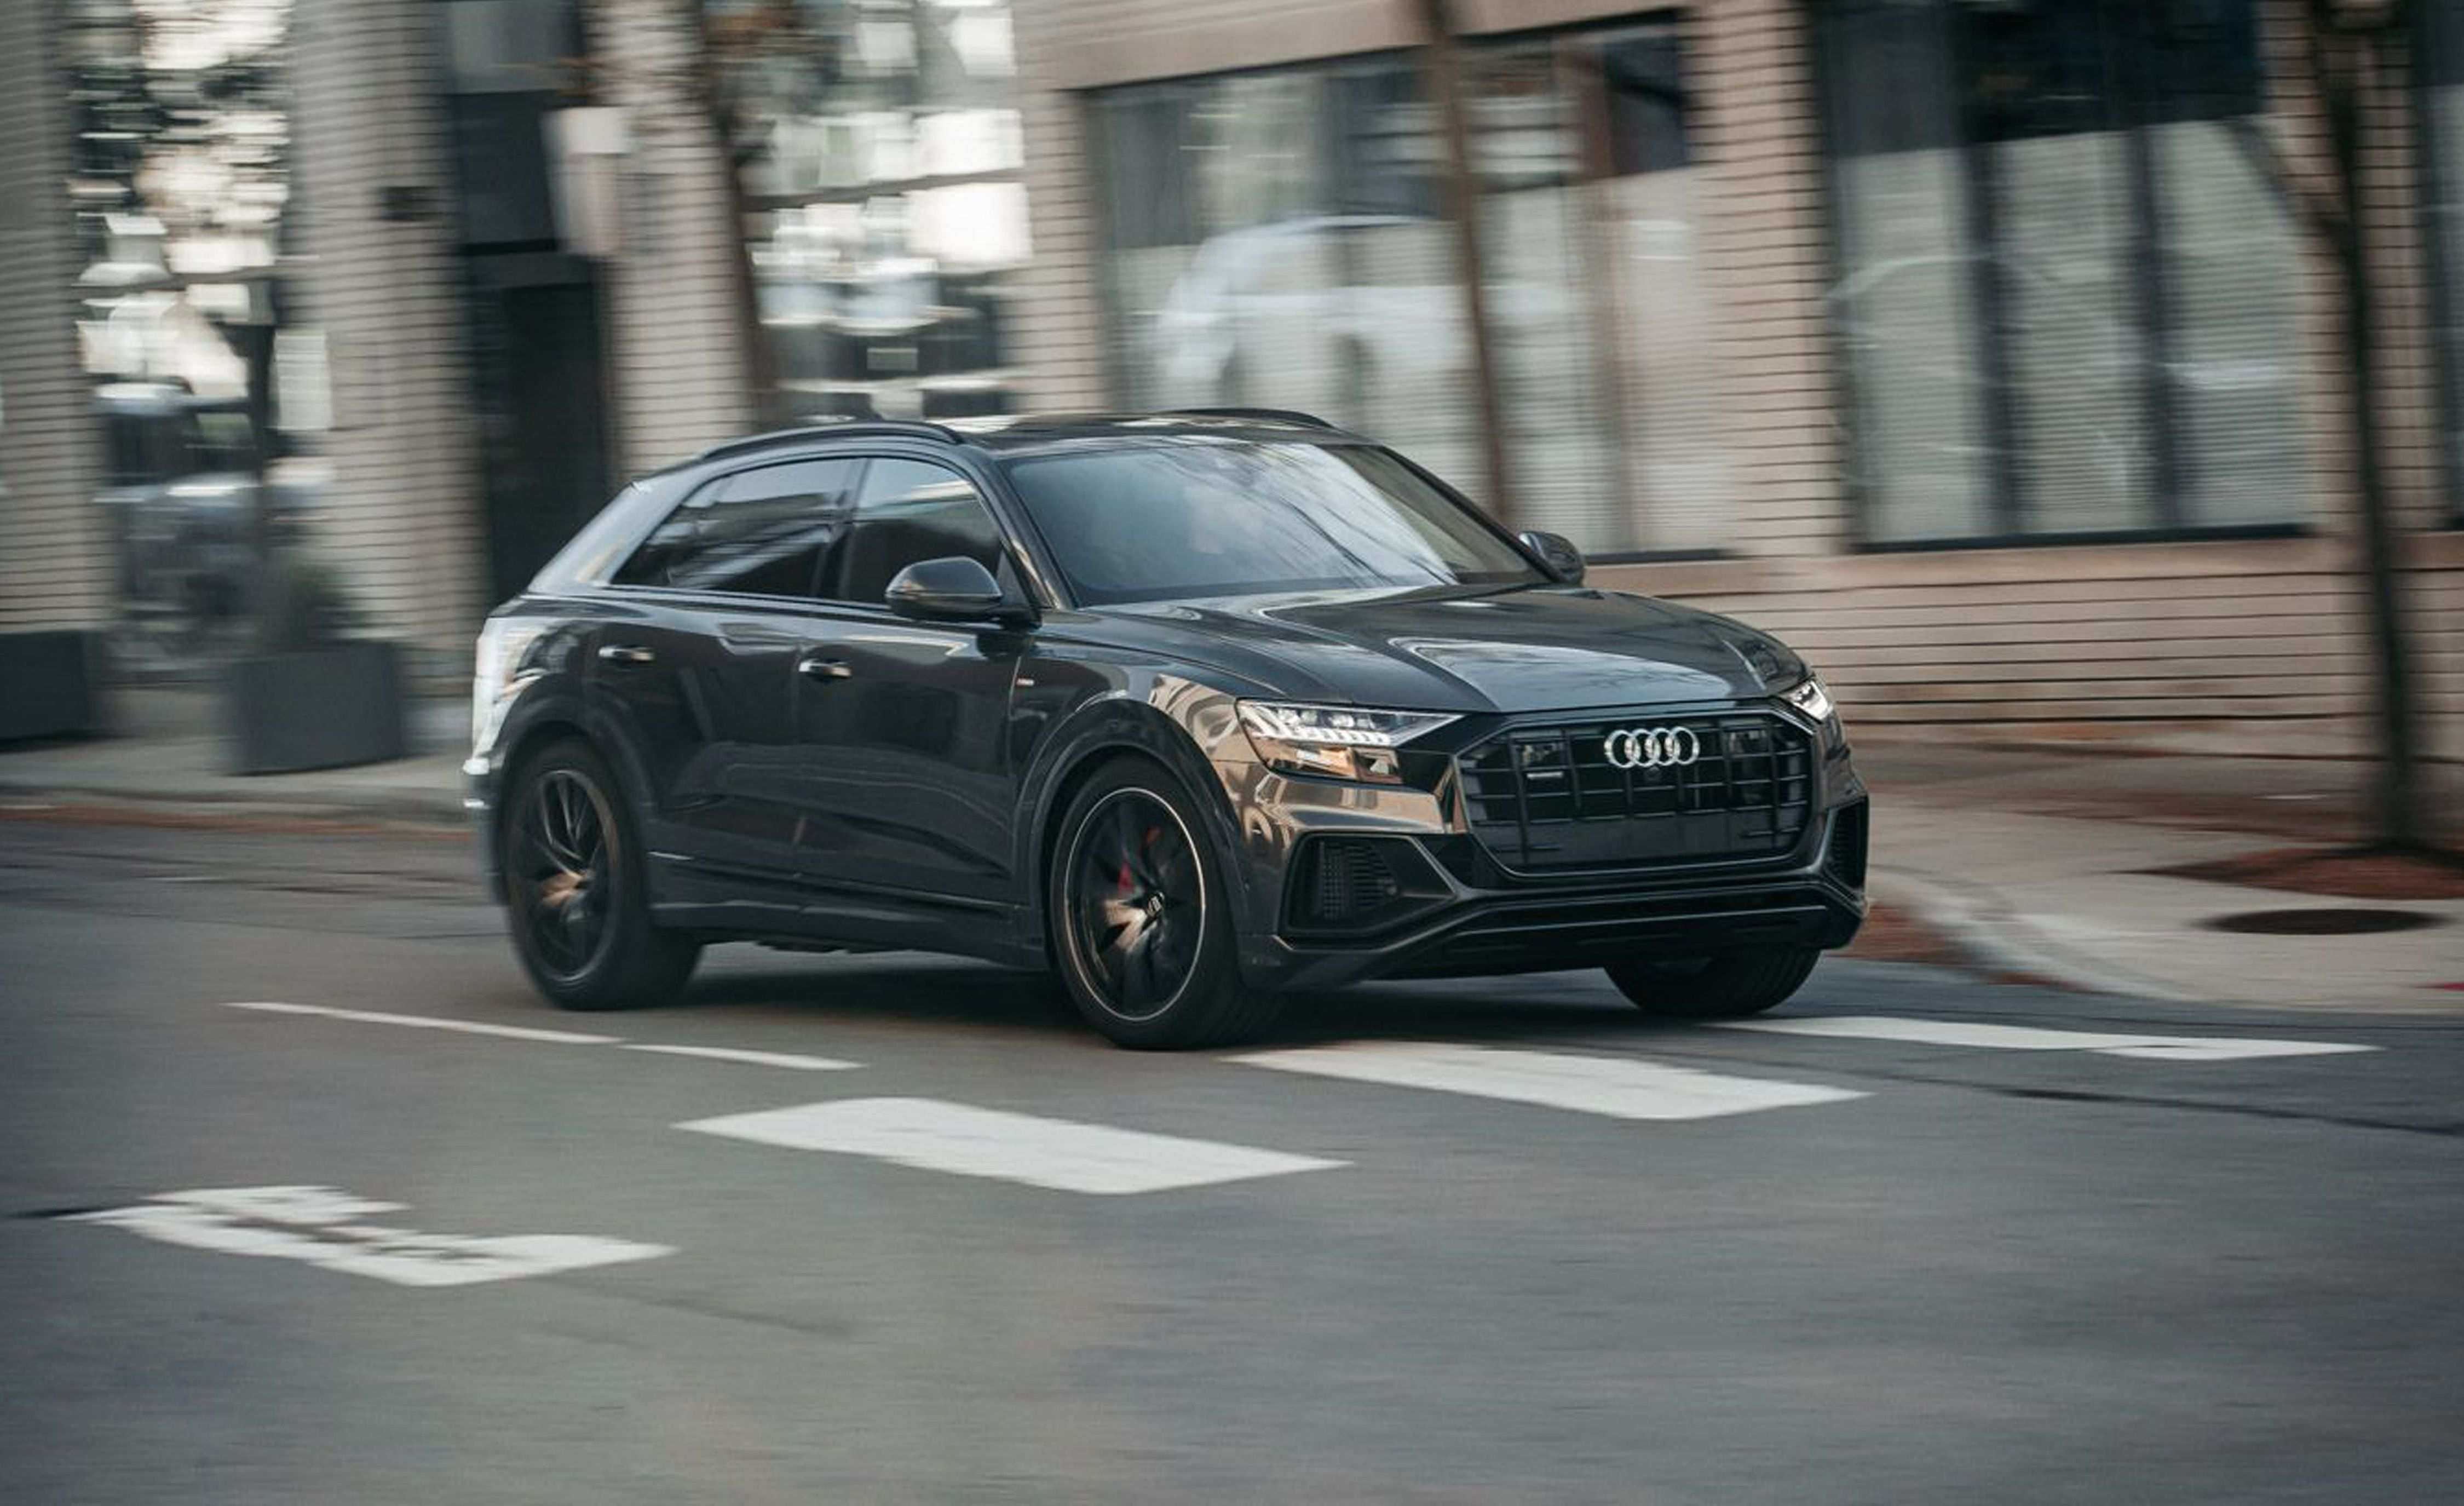 93 New 2019 Audi Q8 Price Review Research New for 2019 Audi Q8 Price Review